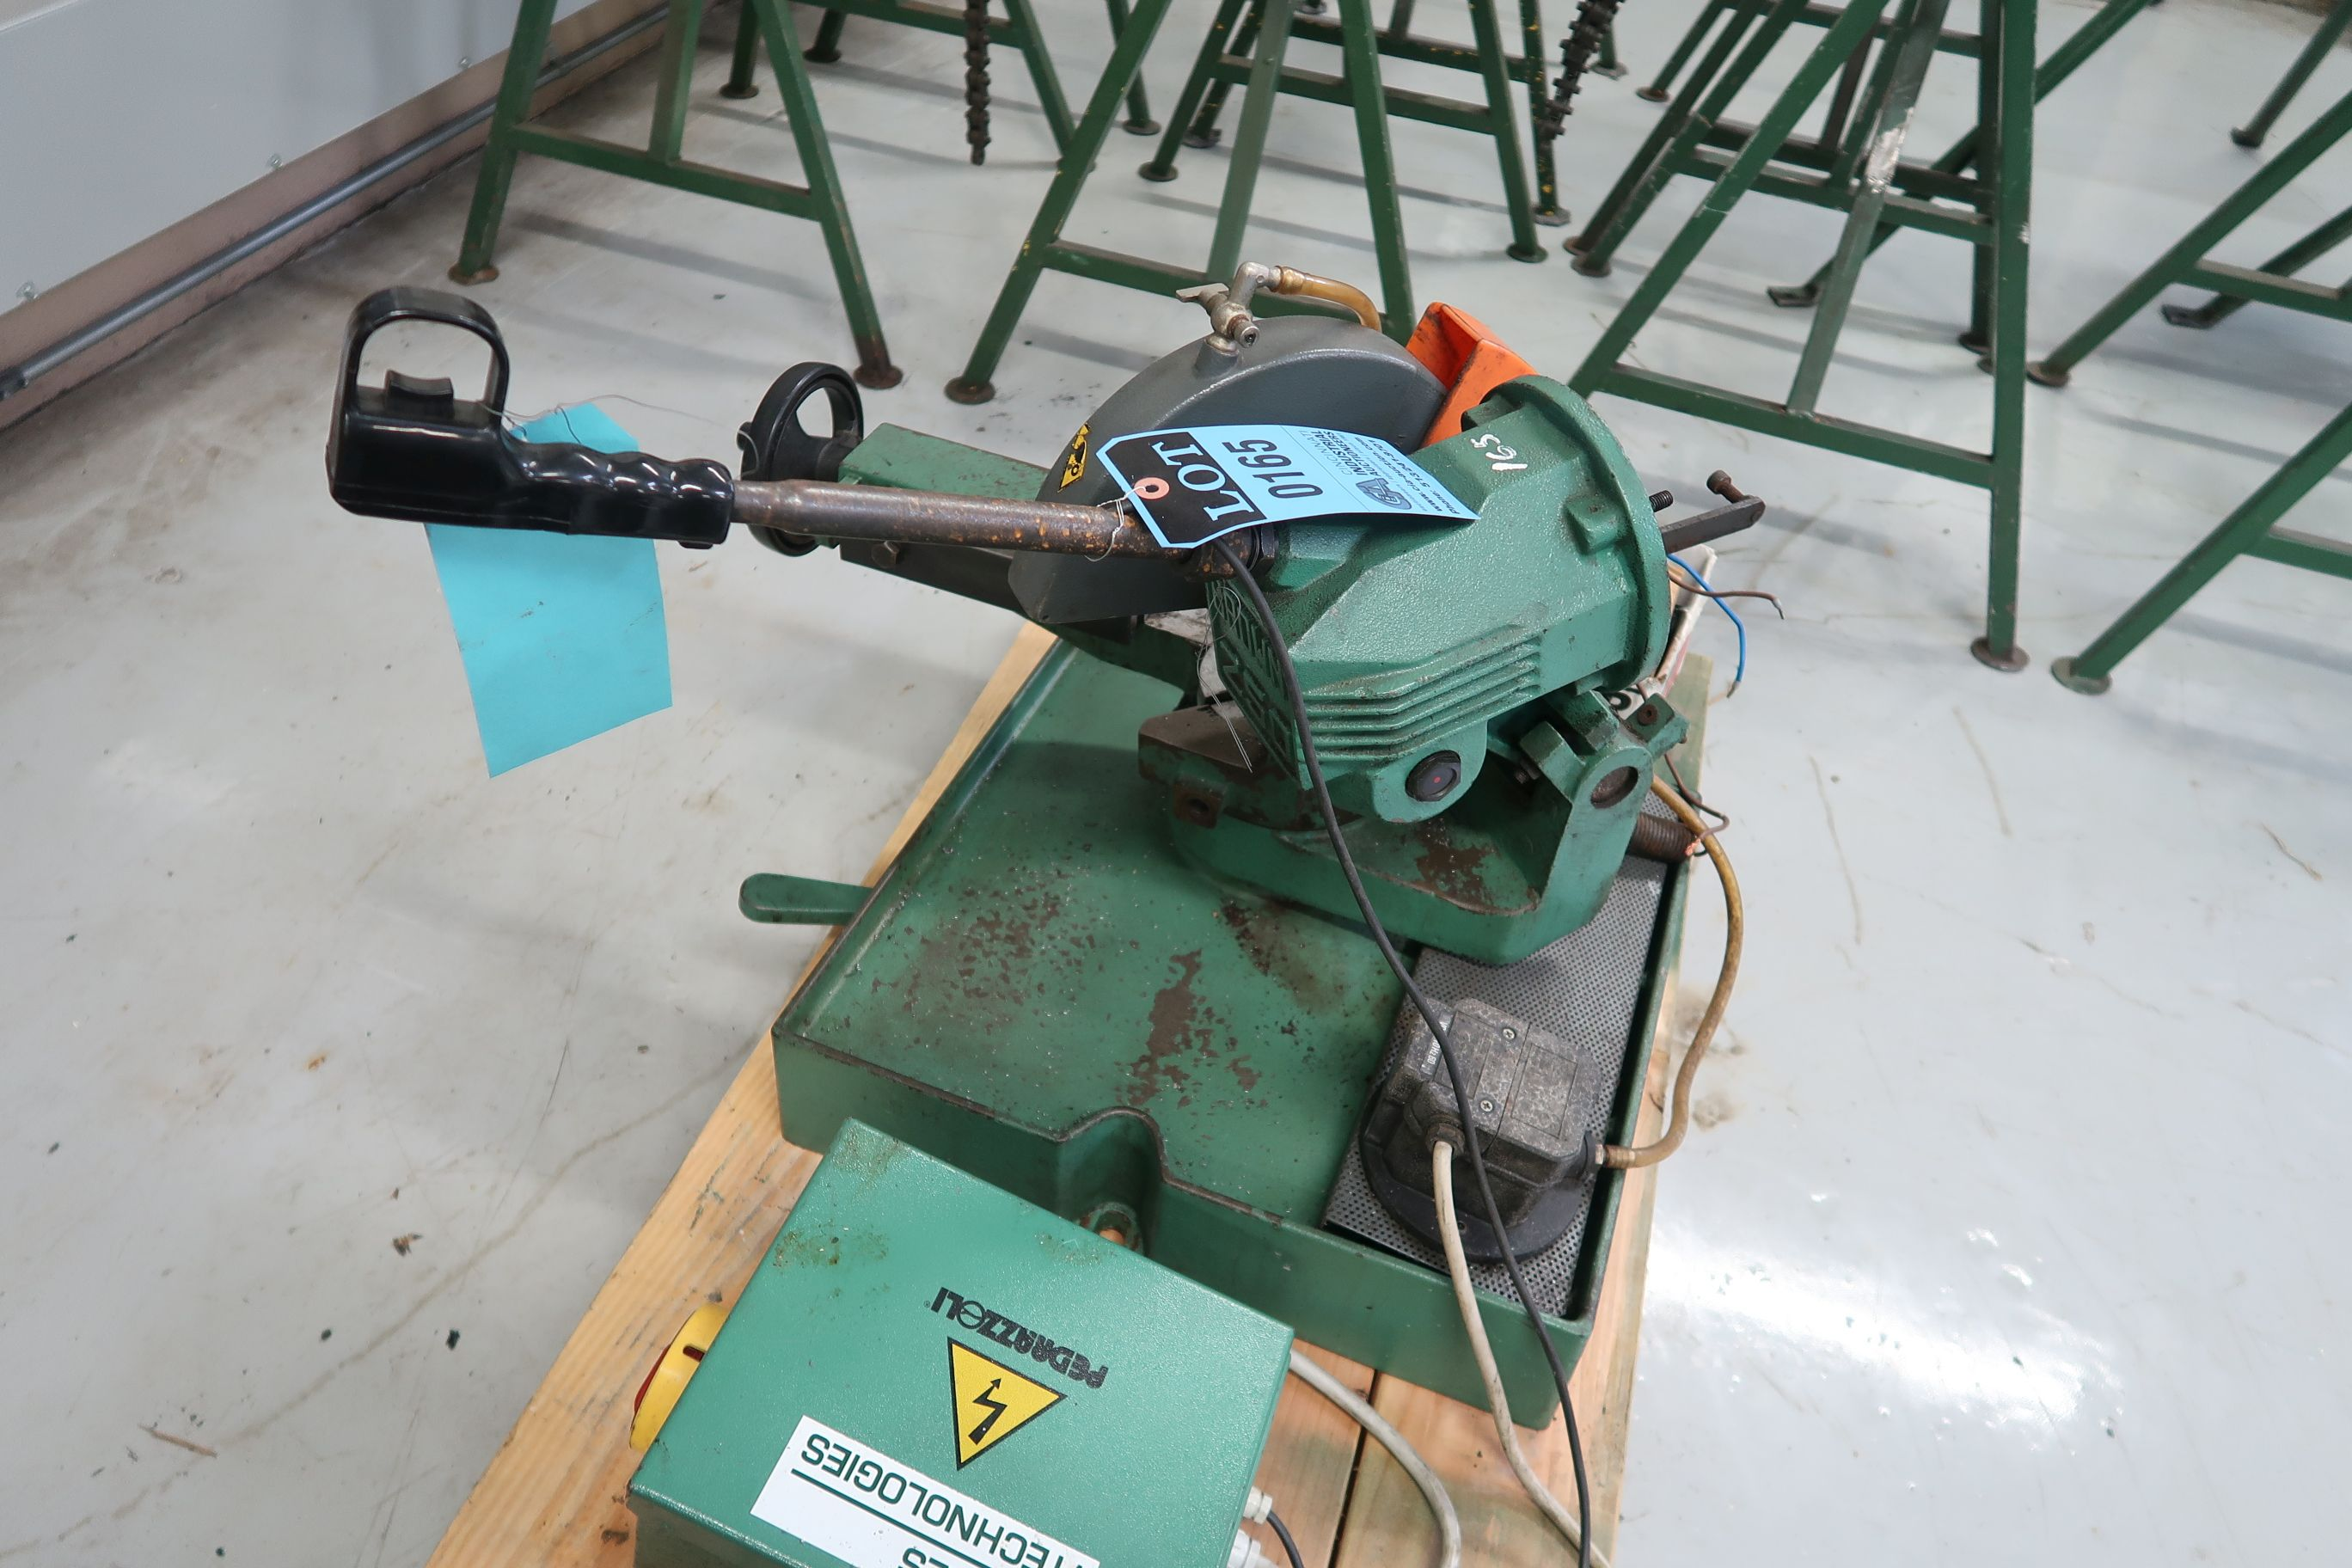 BROWN MODEL 250 TABLE MOUNTED SAW (PARTS MACHINE) - Image 2 of 3